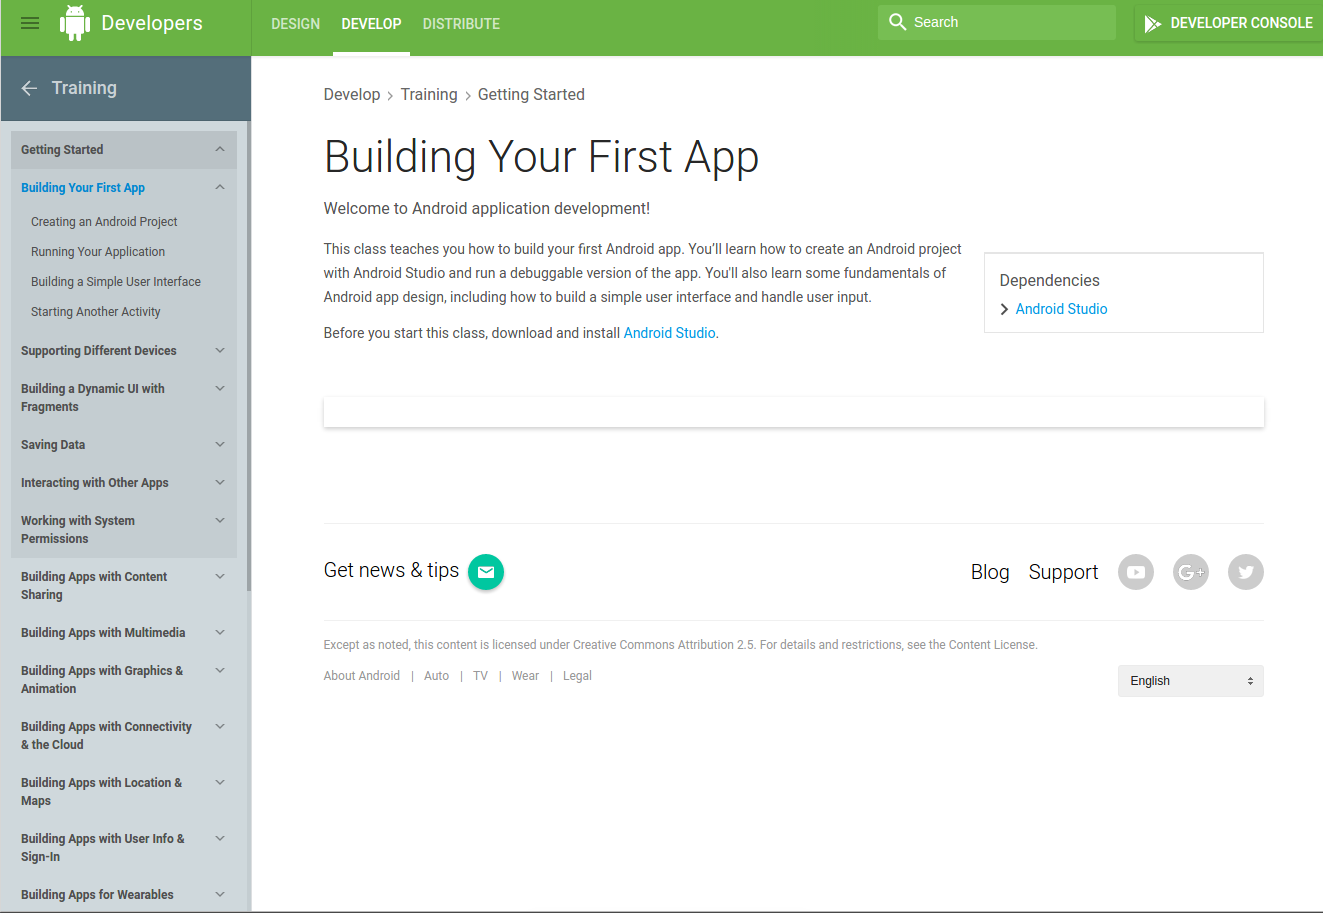 01 - Building Your First App